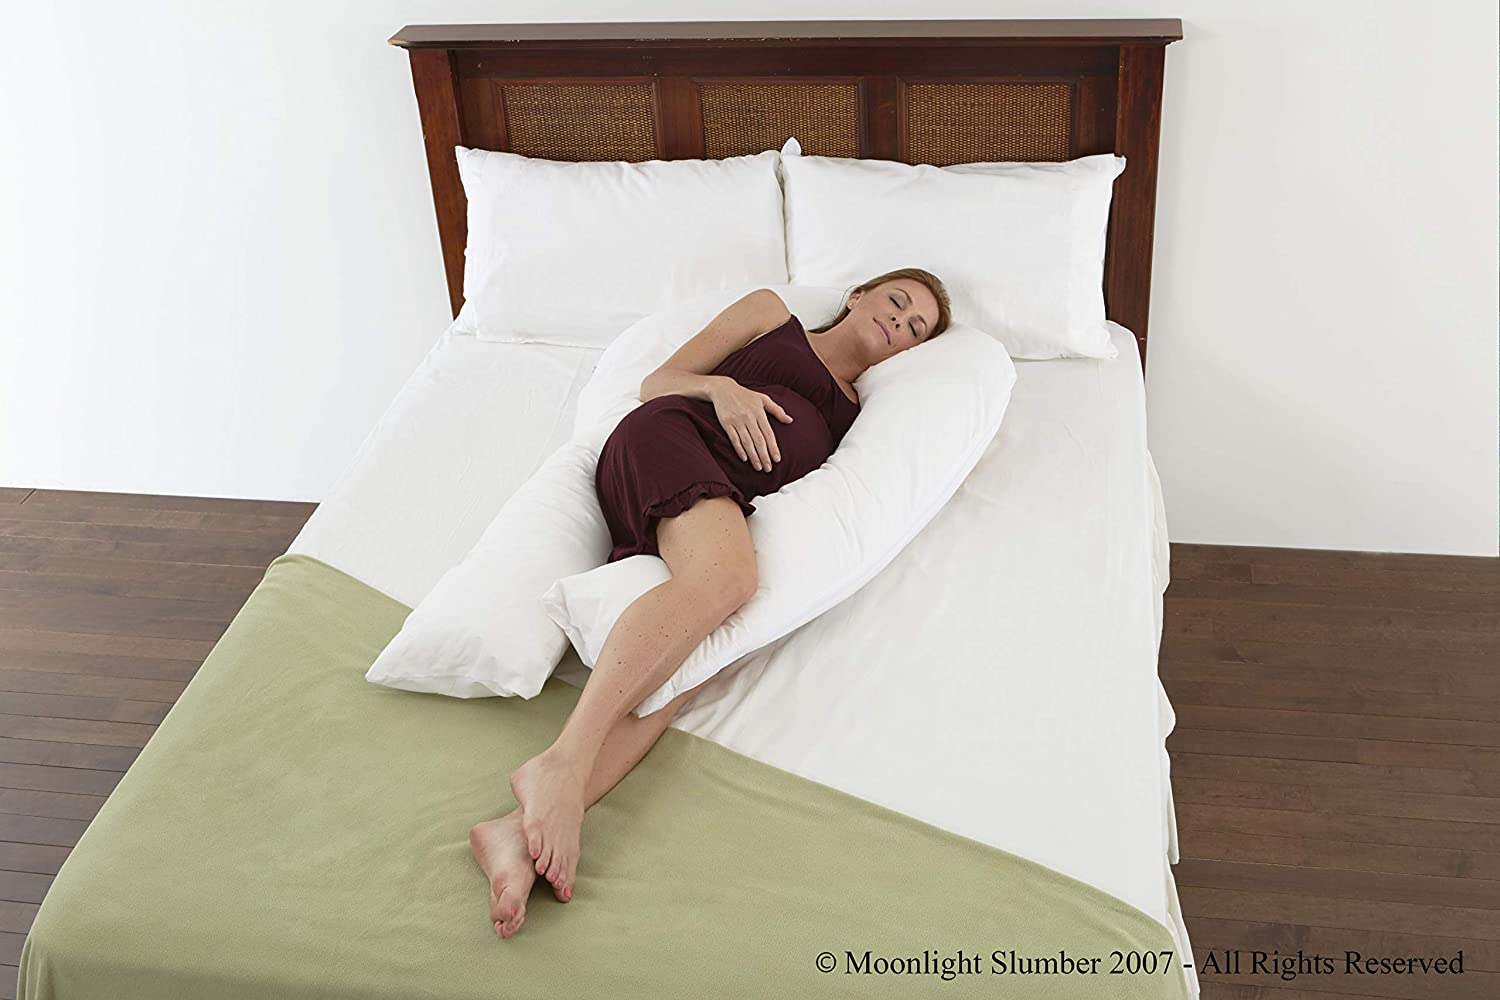 Lancashire Bedding Supreme Comfort U Shaped Total Body Support Pregnancy Maternity Pillow - with FREE cover - Made In The UK! 5956331